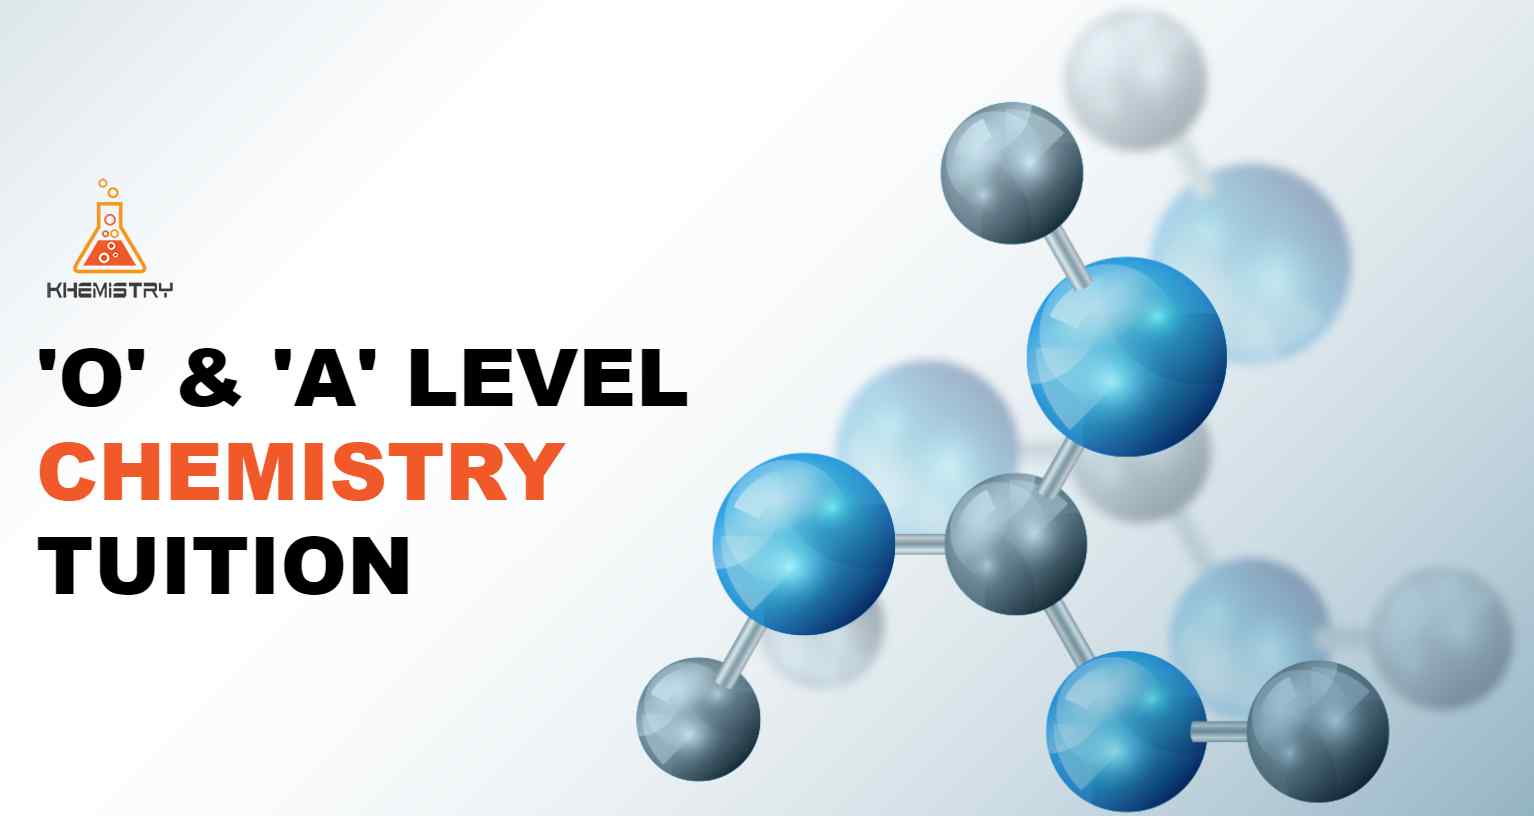 mr khemistry Top JC Chemistry Tuitions in Singapore